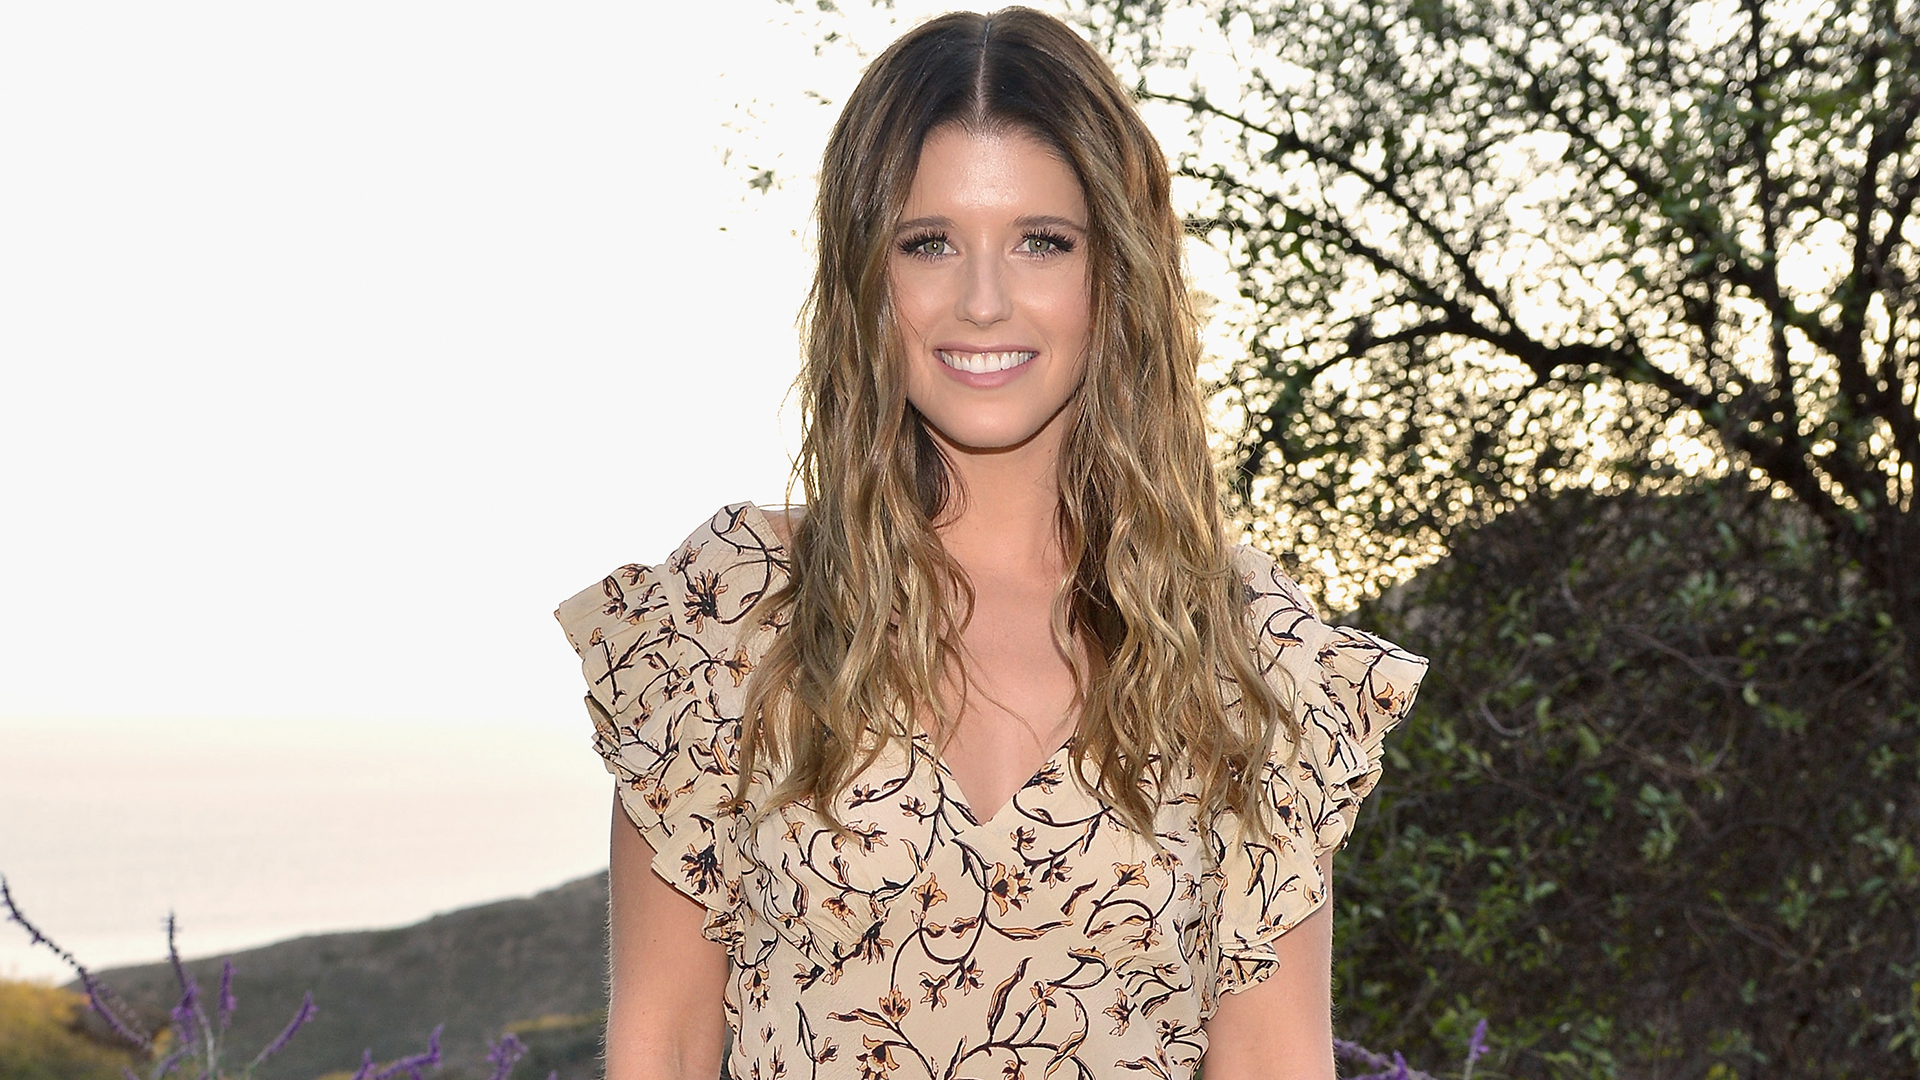 Katherine Schwarzenegger Ethnicity, Race, Relationship and Nationality